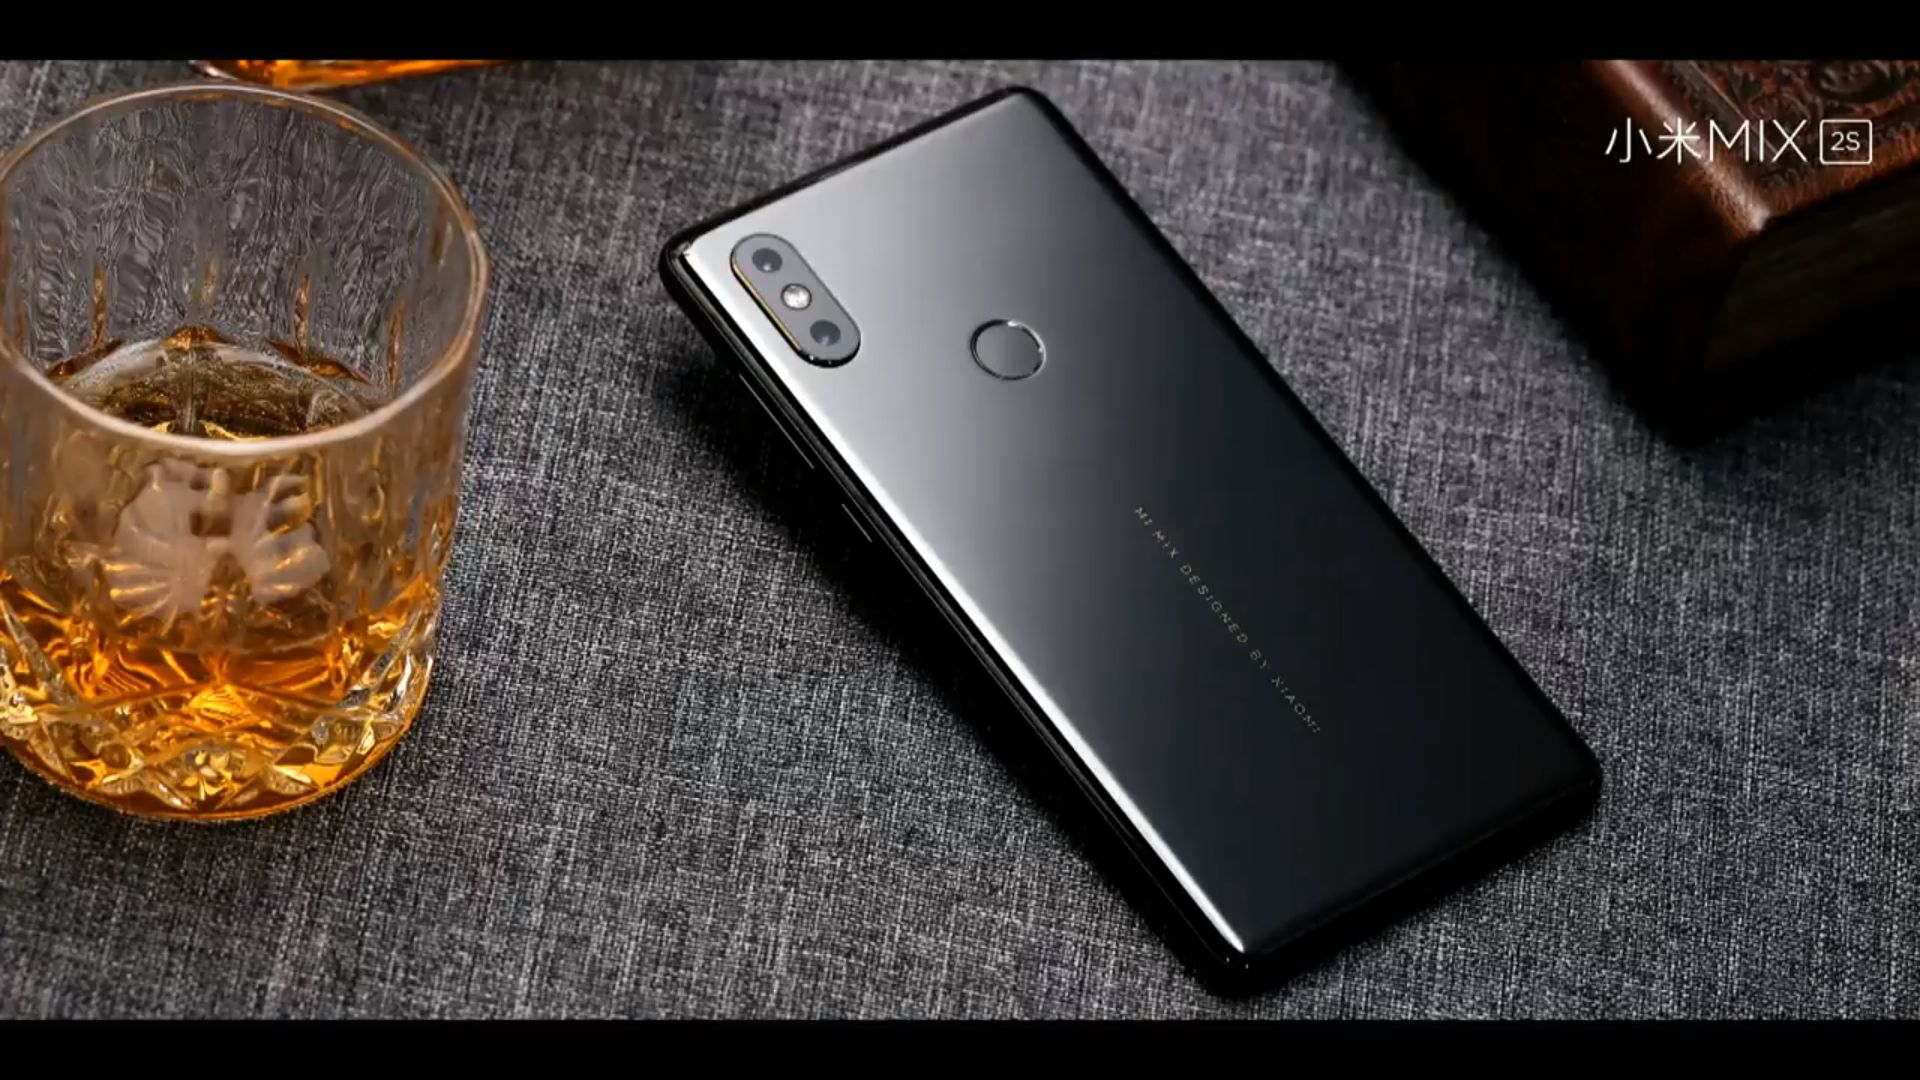 Xiaomi Mi Mix 2s Unleashed Featuring Snapdragon 845 And Dual Pixel Now Packs A New Camera Setup At The Rear It Is First Smartphone To Support Qi Wireless Charging Which Even Released Shockingly